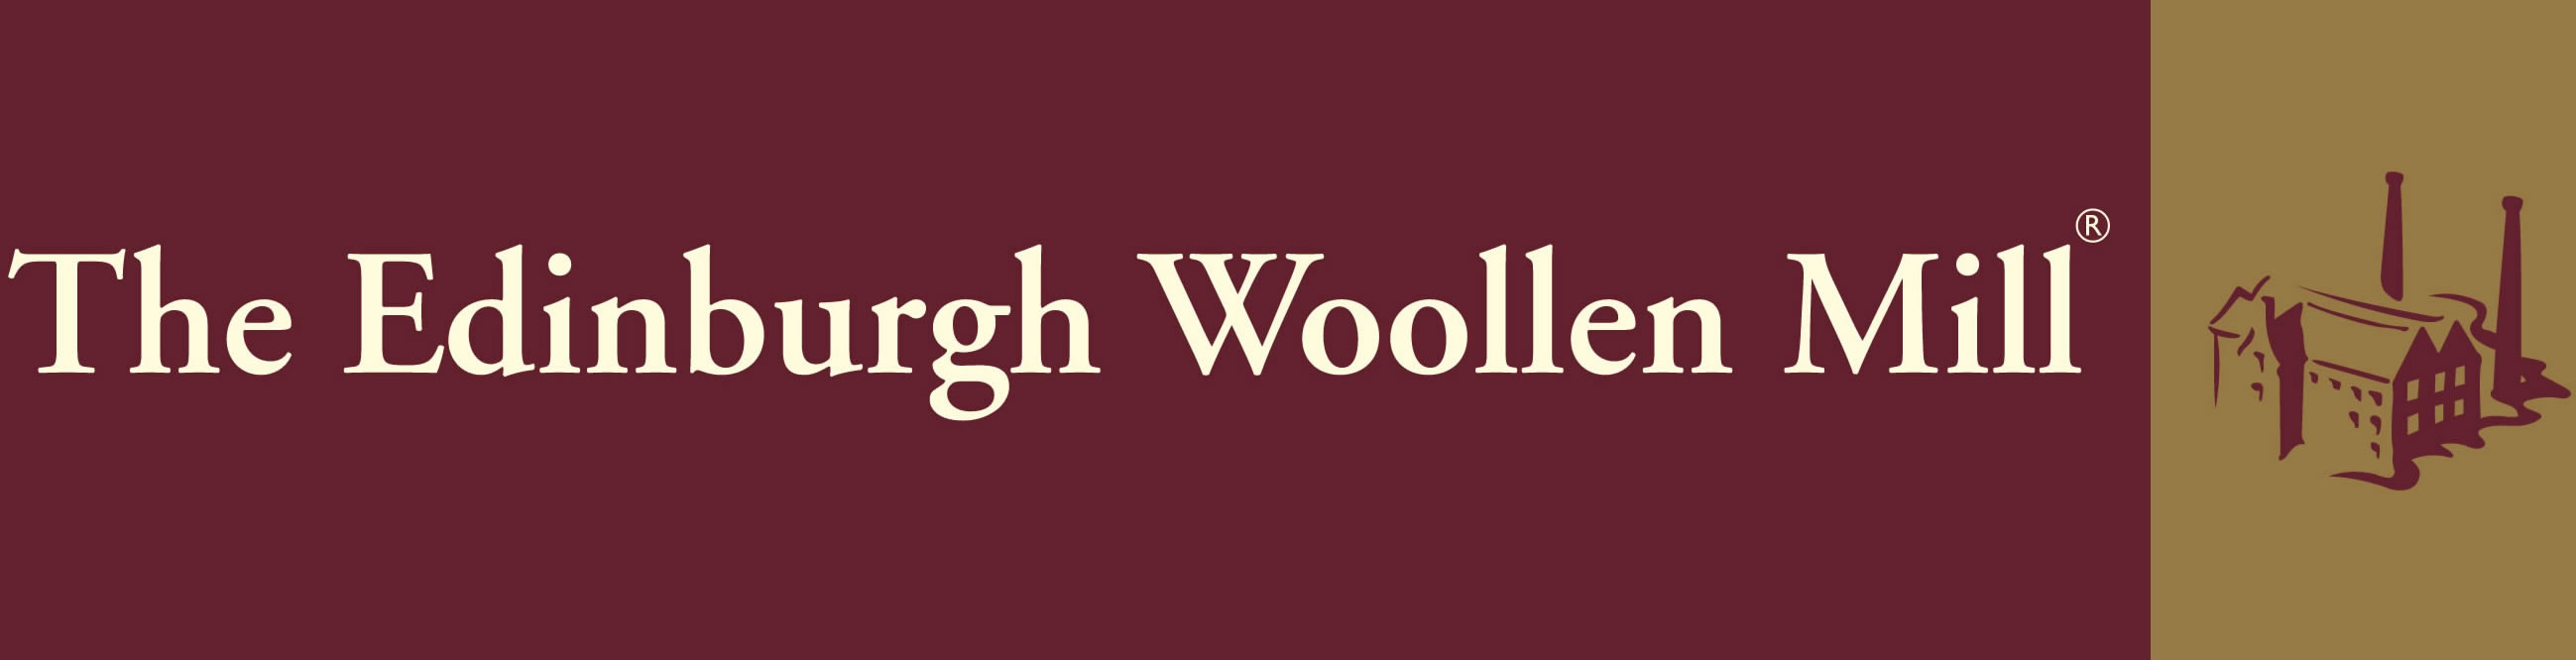 Edinburgh Woollen Mill